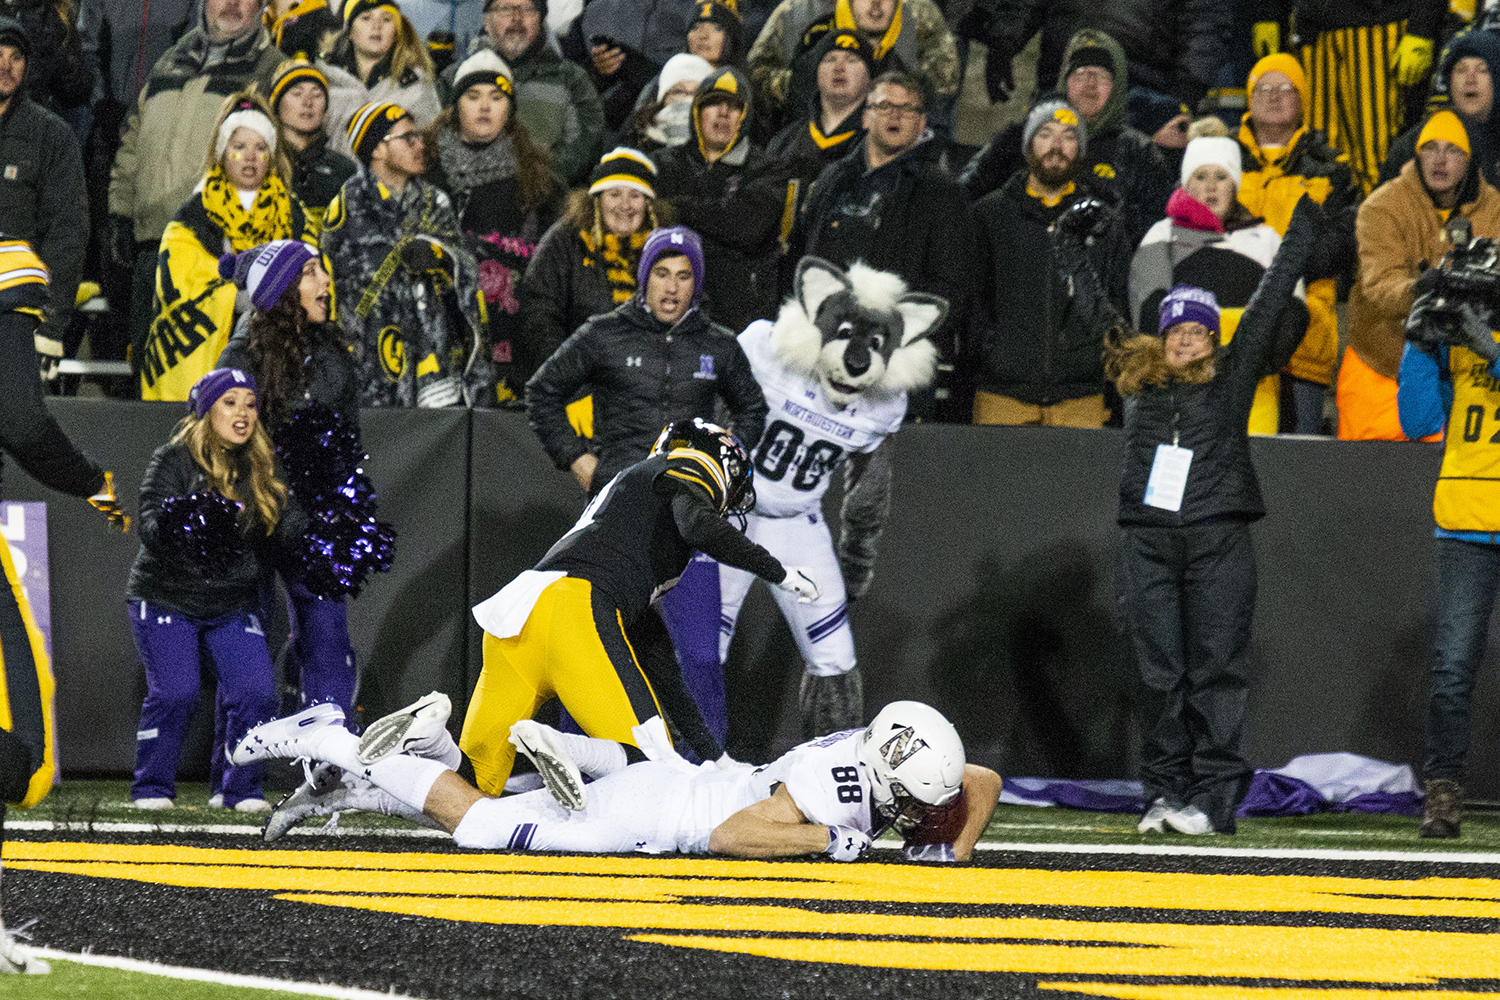 Northwestern wide receiver Bennnet Skowronek catches a touchdown pass during the Iowa/Northwestern game at Kinnick Stadium on Saturday, November 10, 2018. The Wildcats defeated the Hawkeyes 14-10. (Katina Zentz/The Daily Iowan)